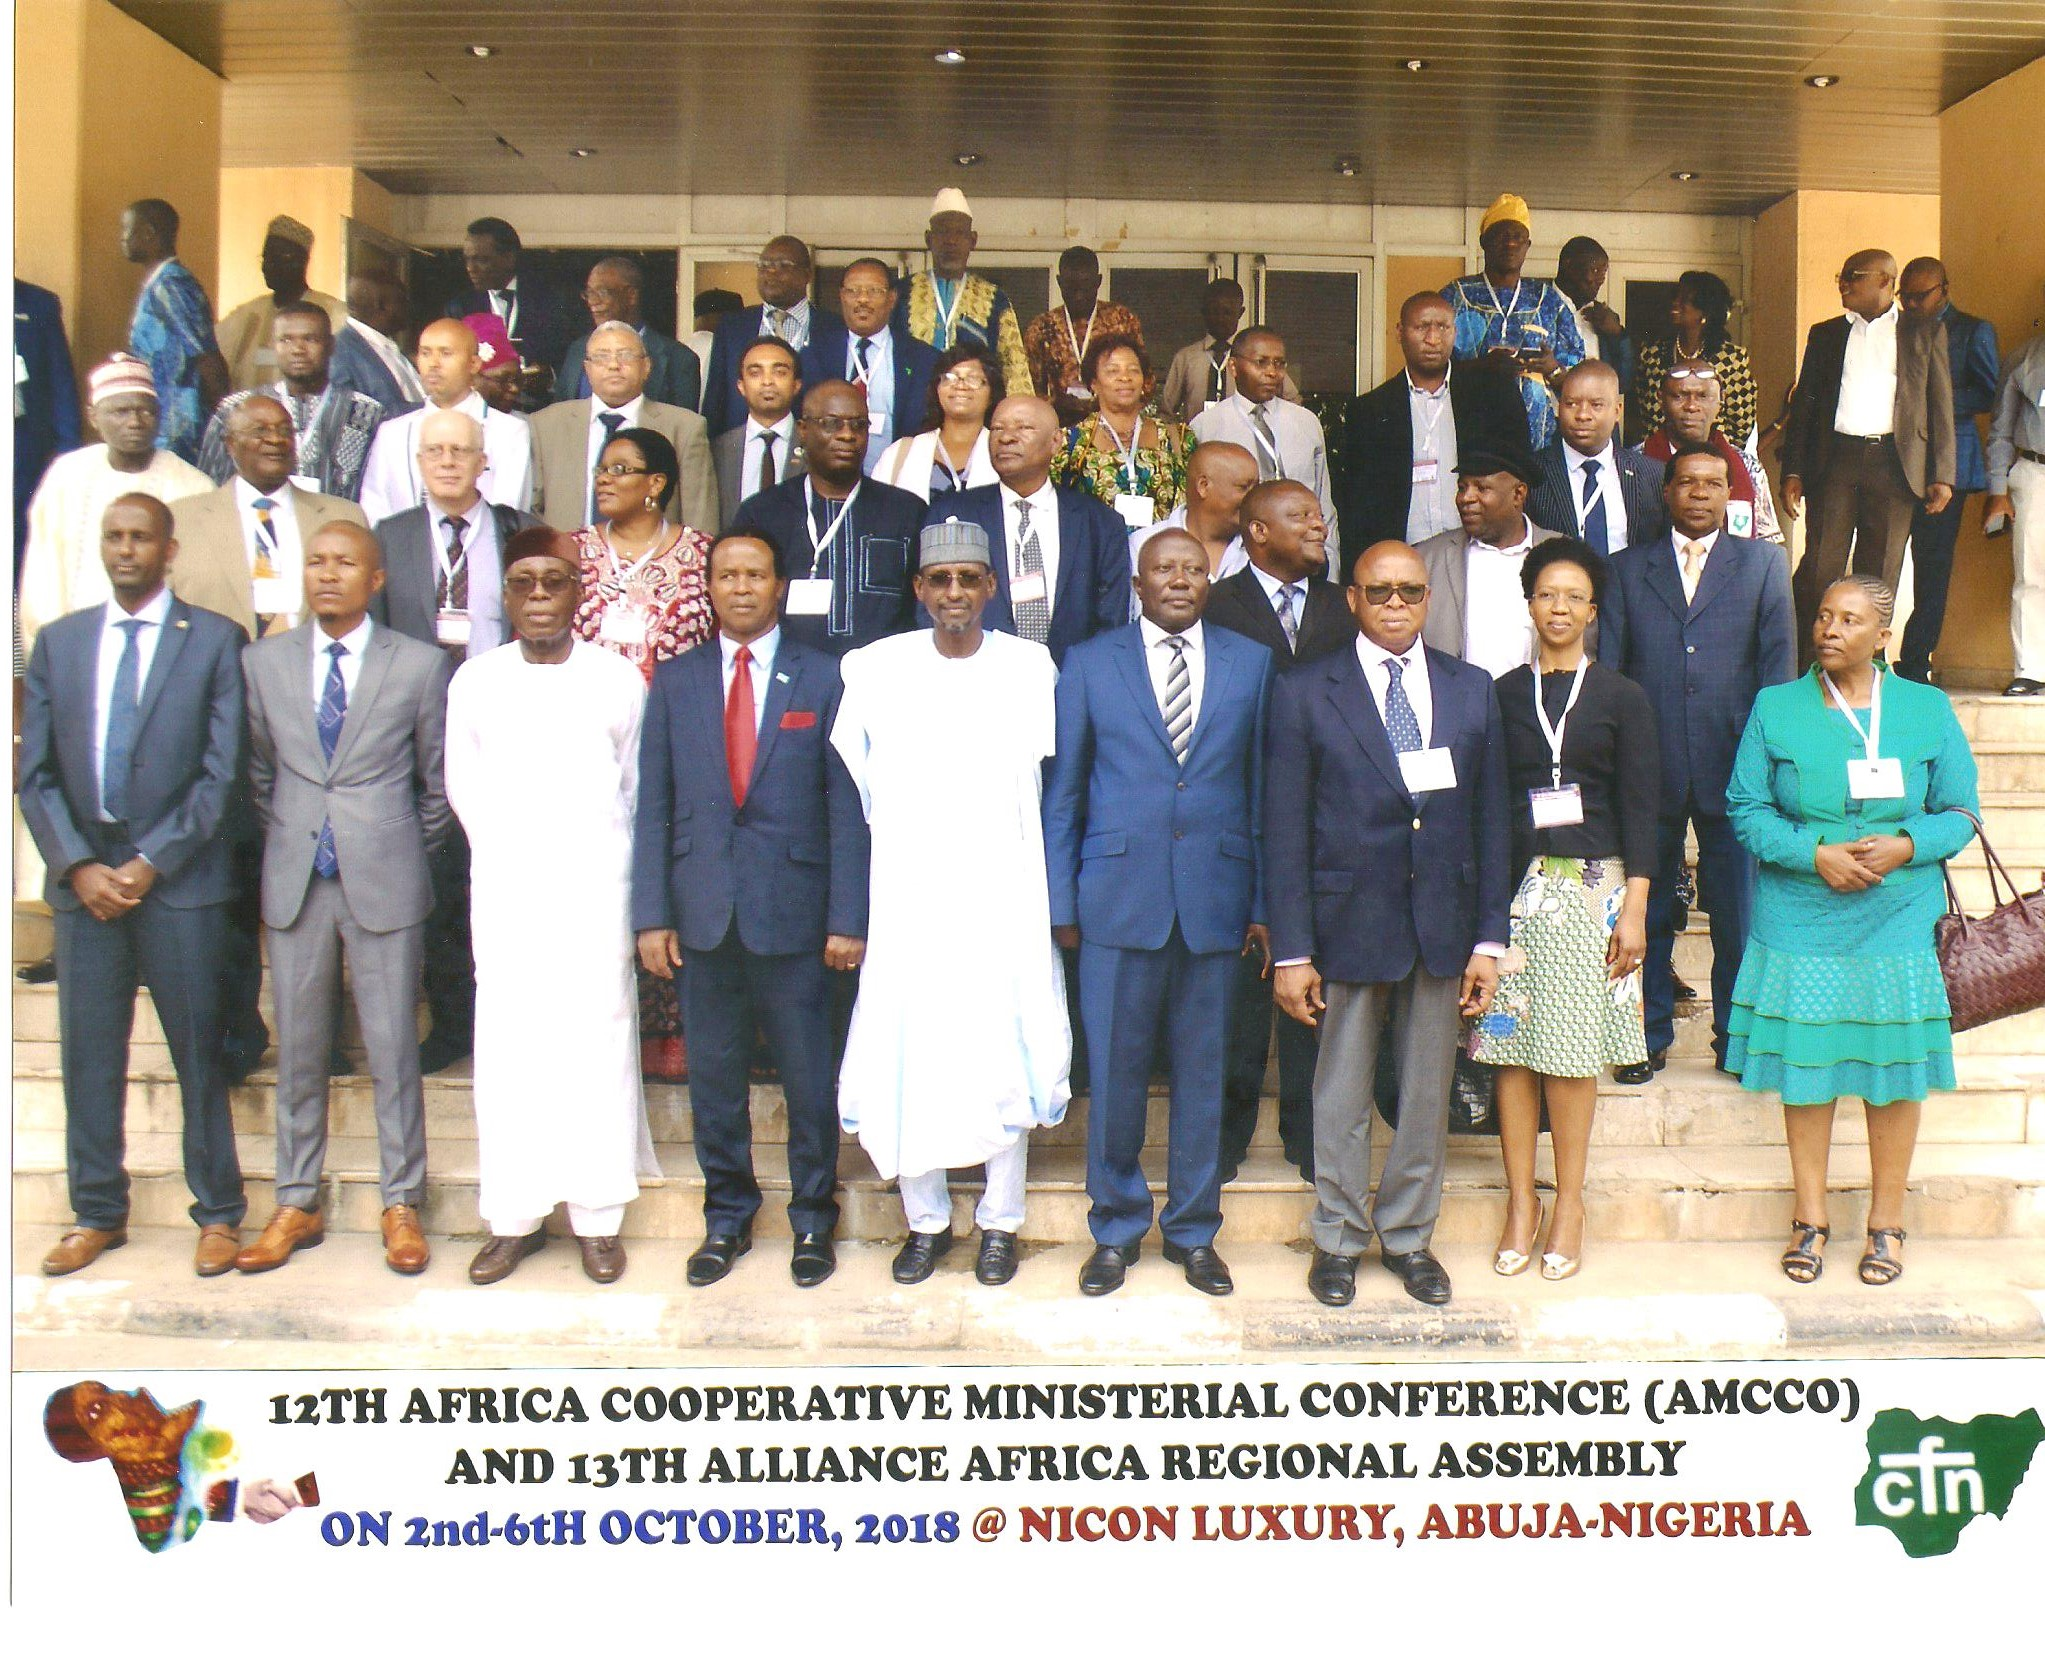 12th African Ministerial Cooperative Conference (AMCCO)